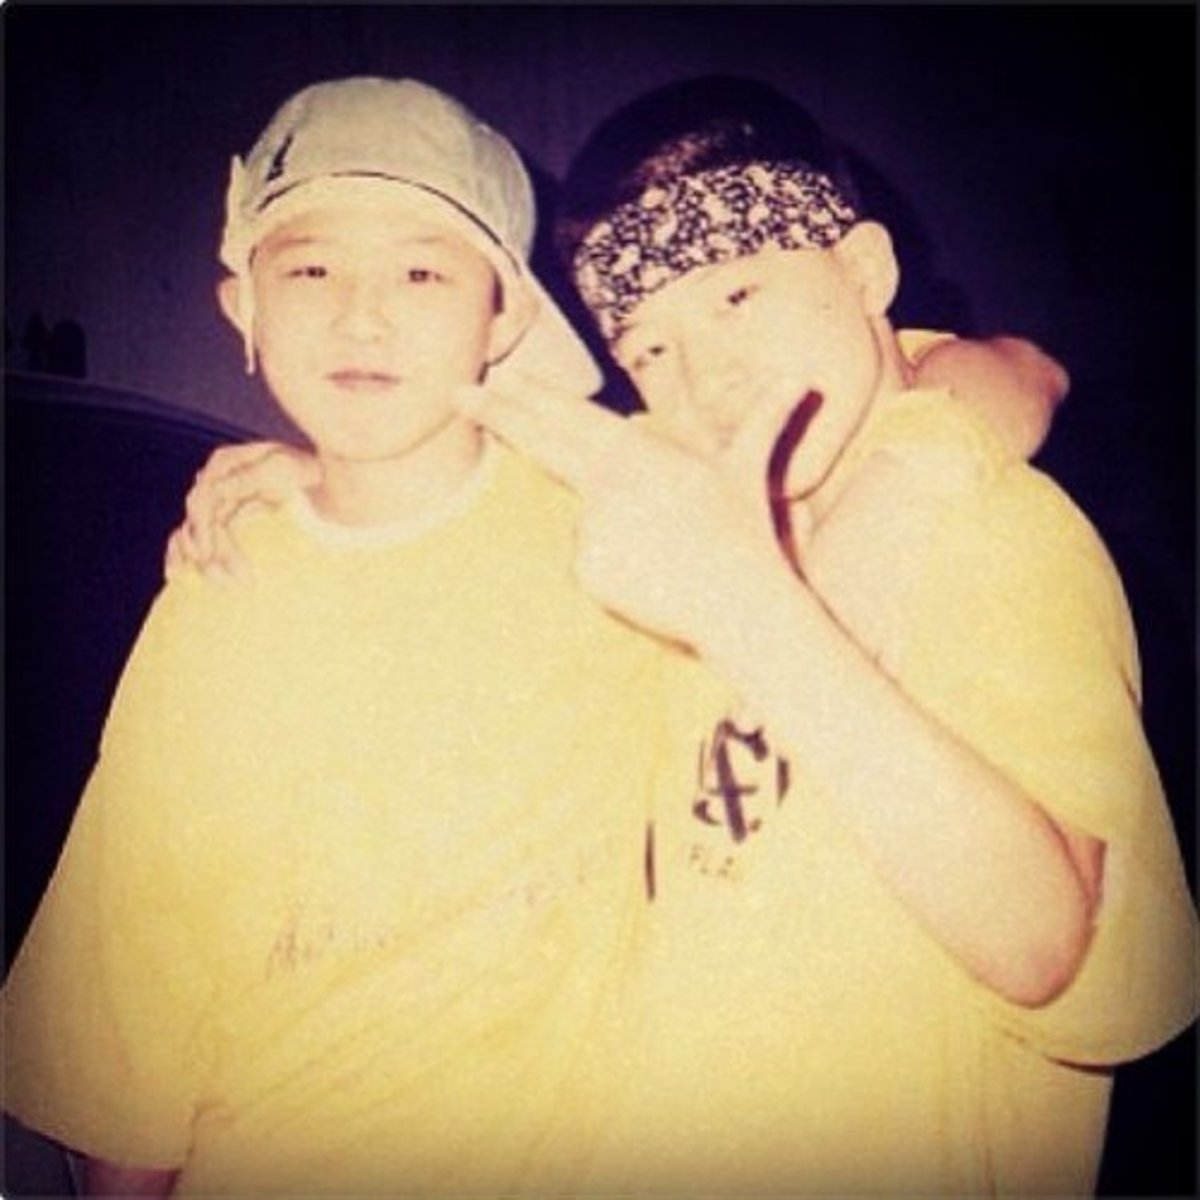 Childhood photo of GD and Taeyang. GD posted this photo on his Twitter when he greeted Taeyang a happy birthday